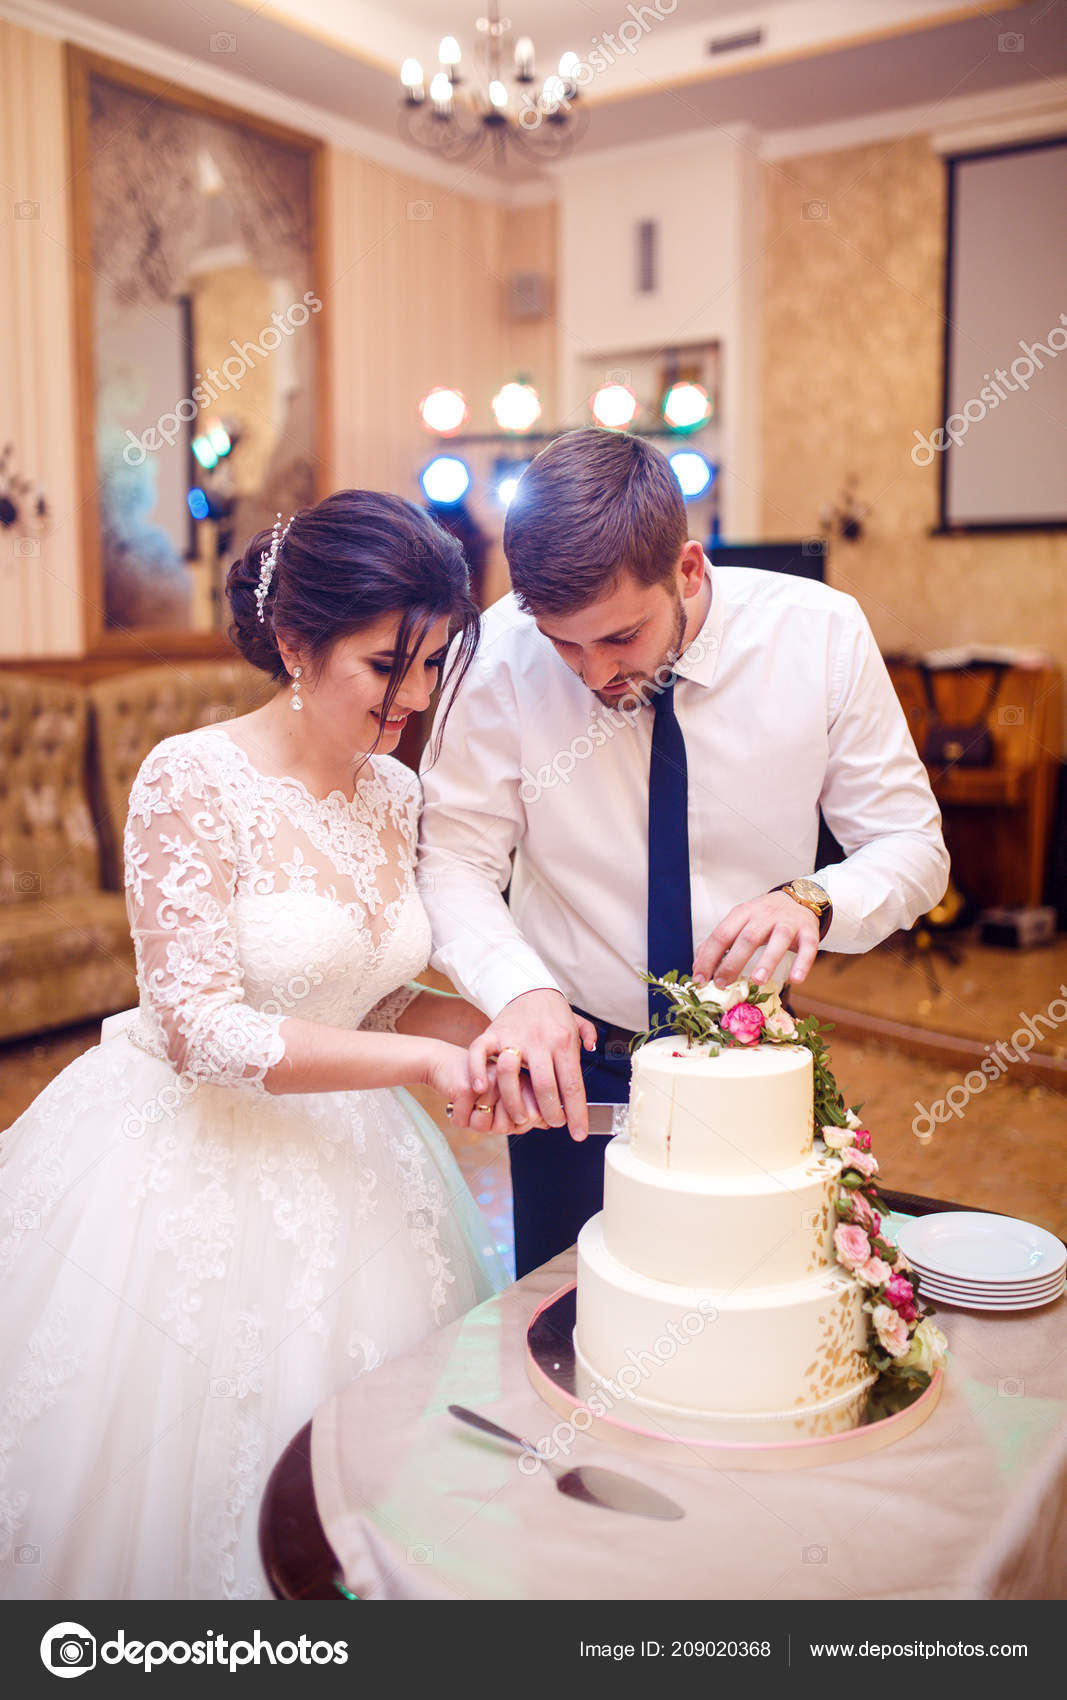 Bride Groom Cutting Wedding Cake Beautiful Cake Nicel Light Wedding Stock Photo C Xerox123 Mail Ua 209020368